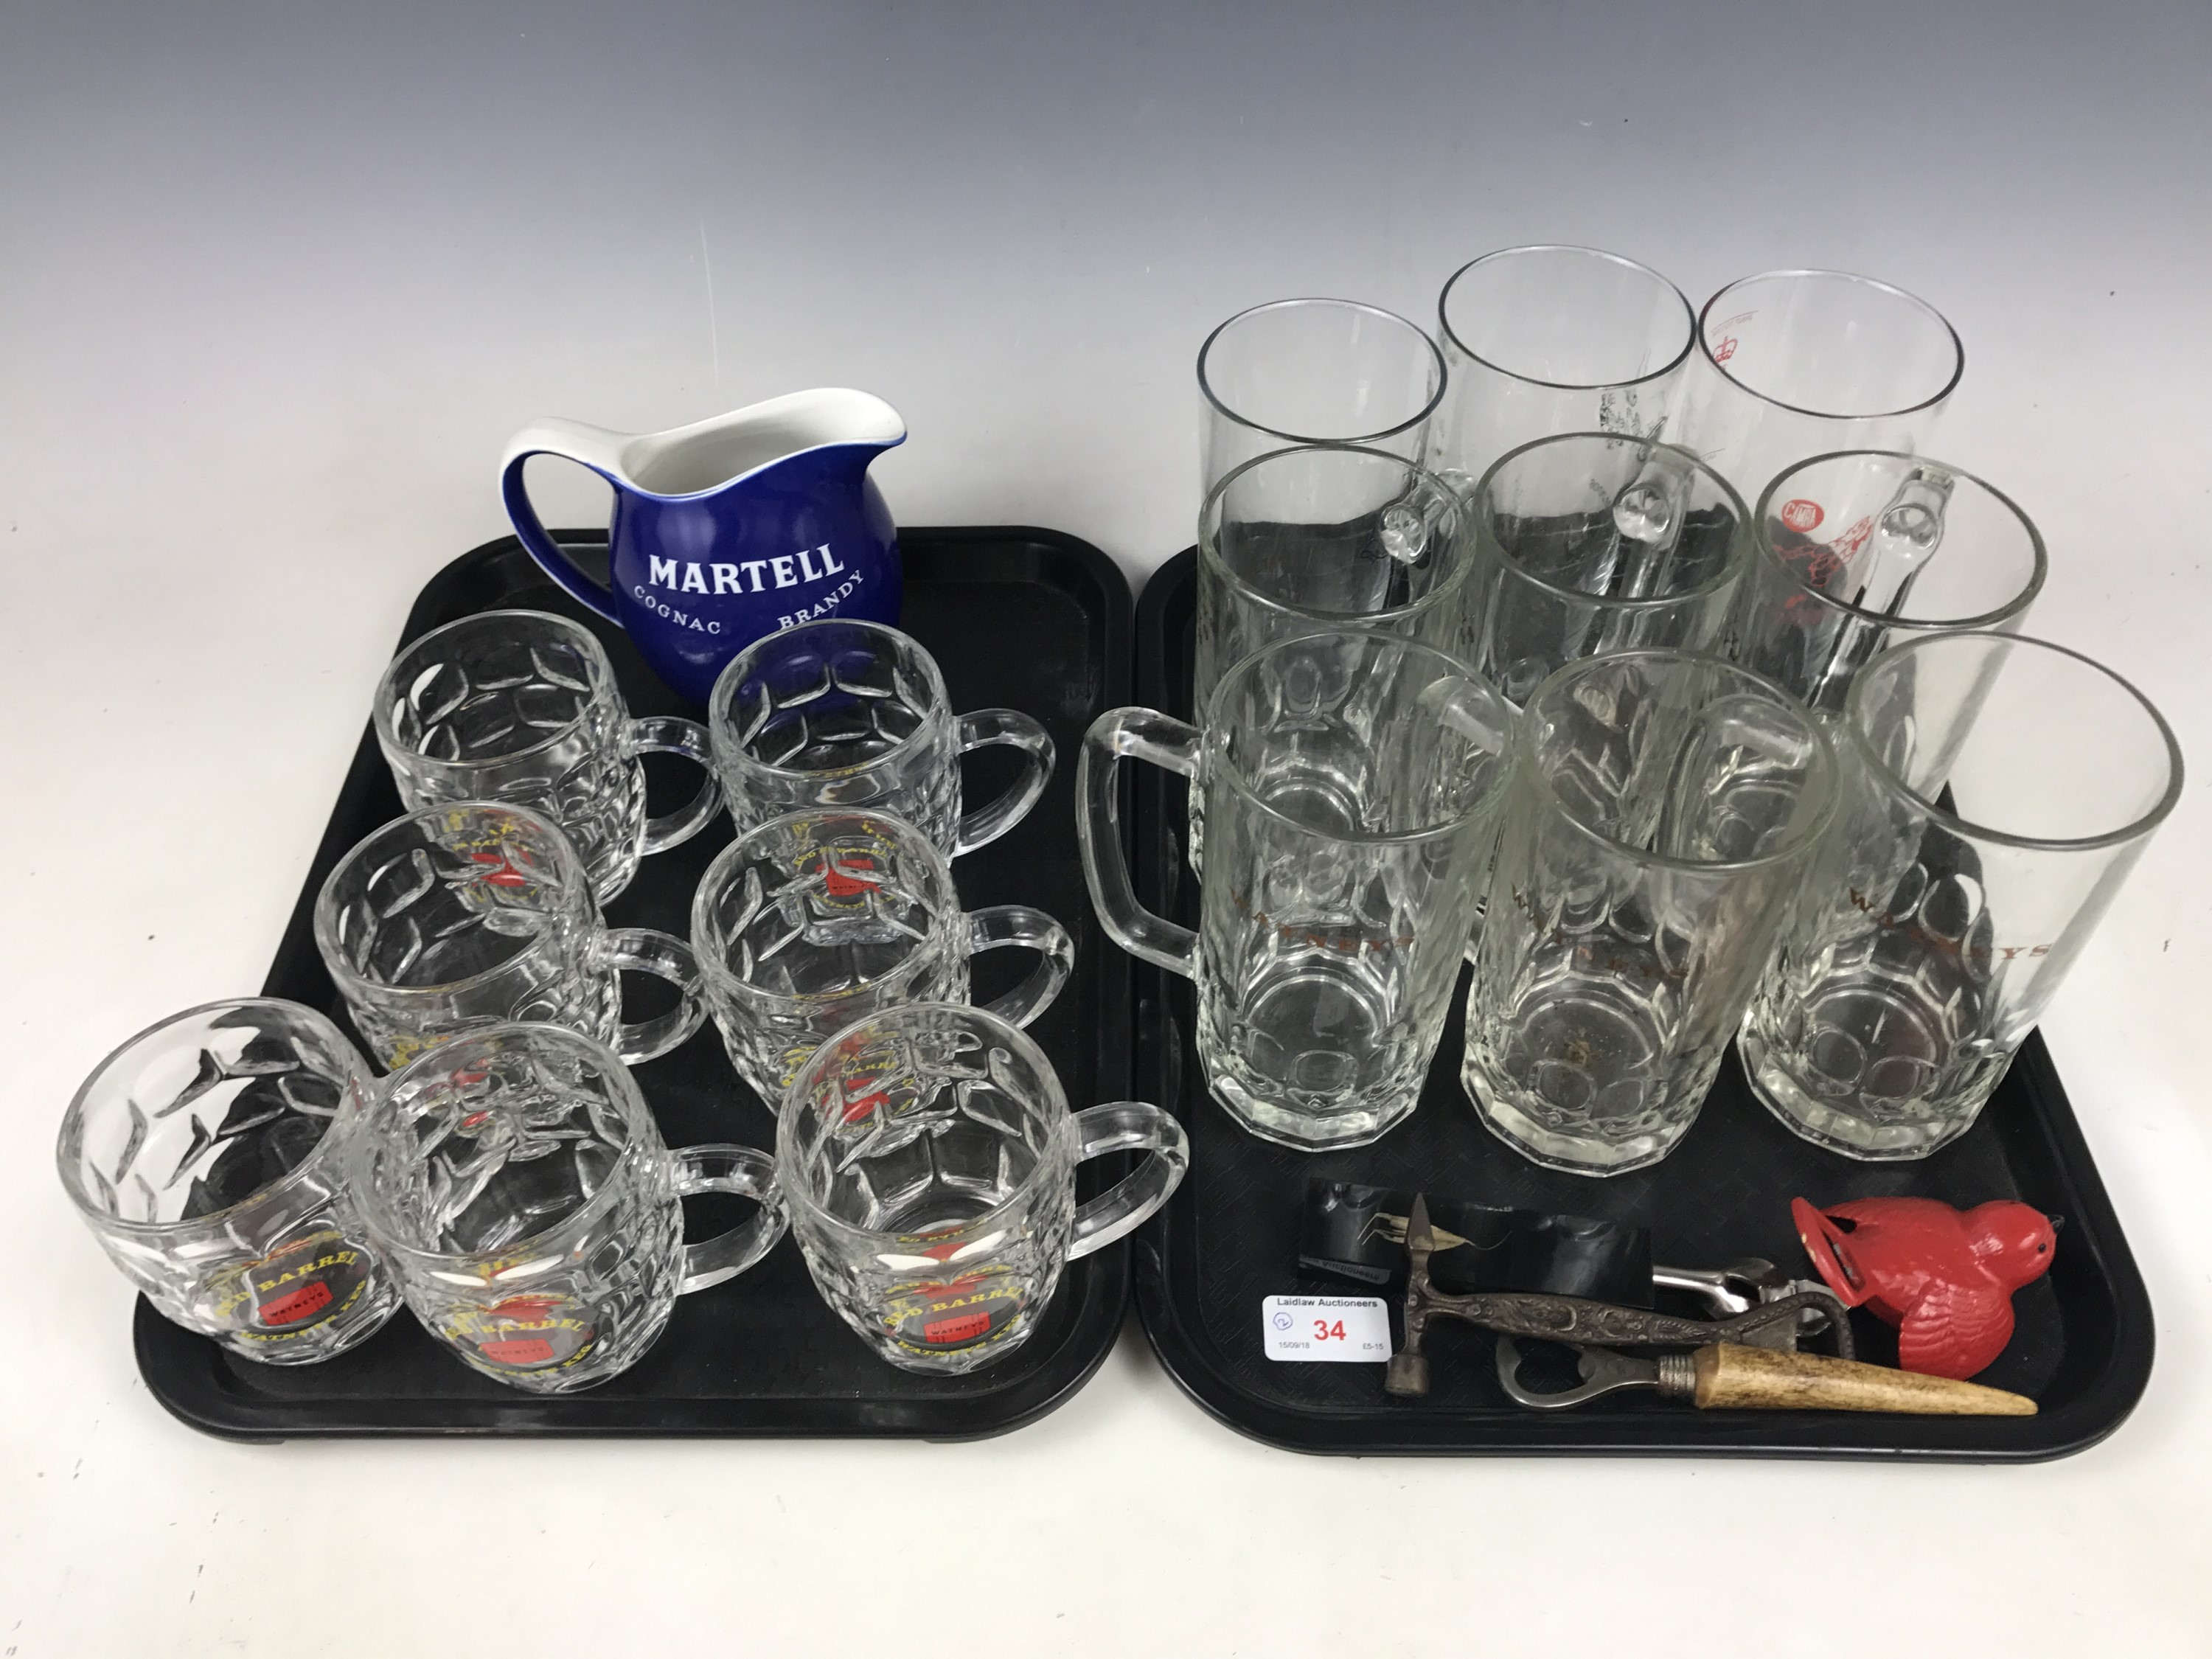 Lot 34 - A quantity of breweriana including branded pub tankards and glasses, a Burleigh Ware Martel water